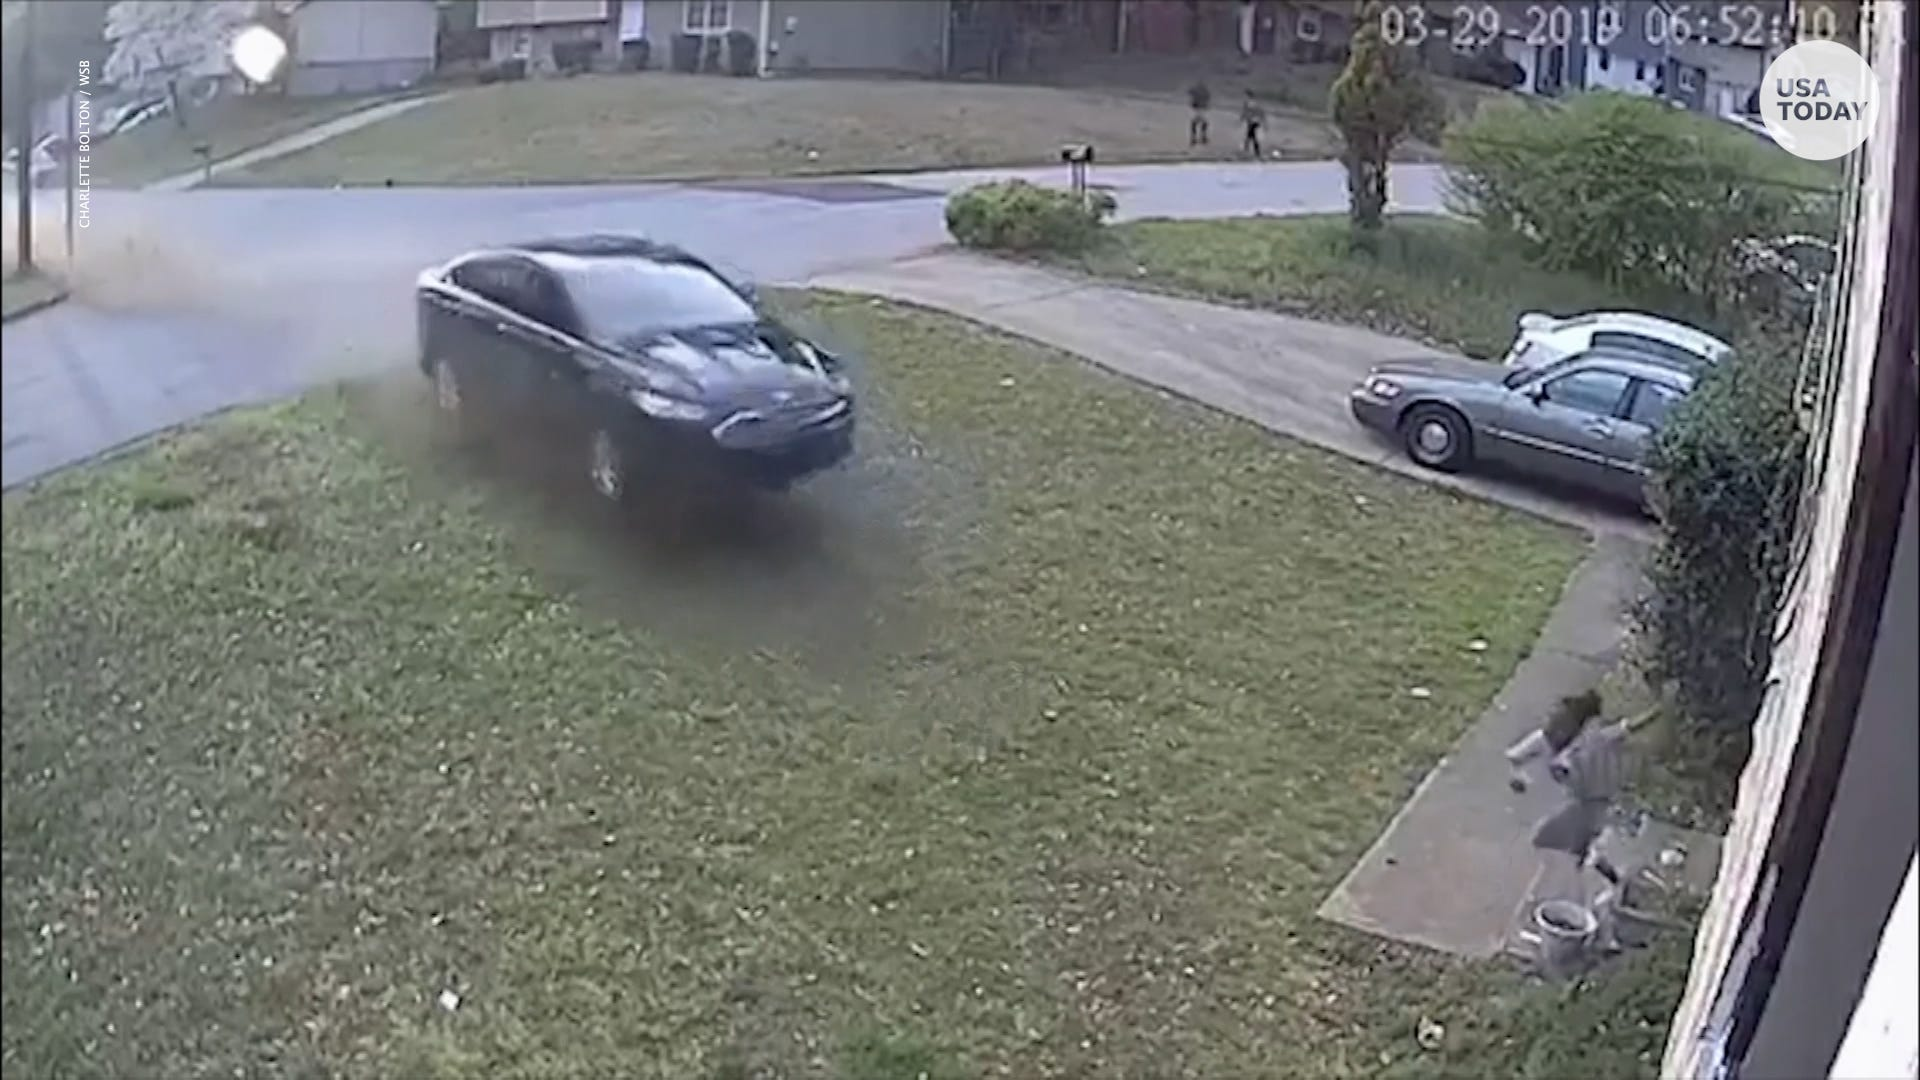 9 Year Old Hit By Car While Playing In Front Yard